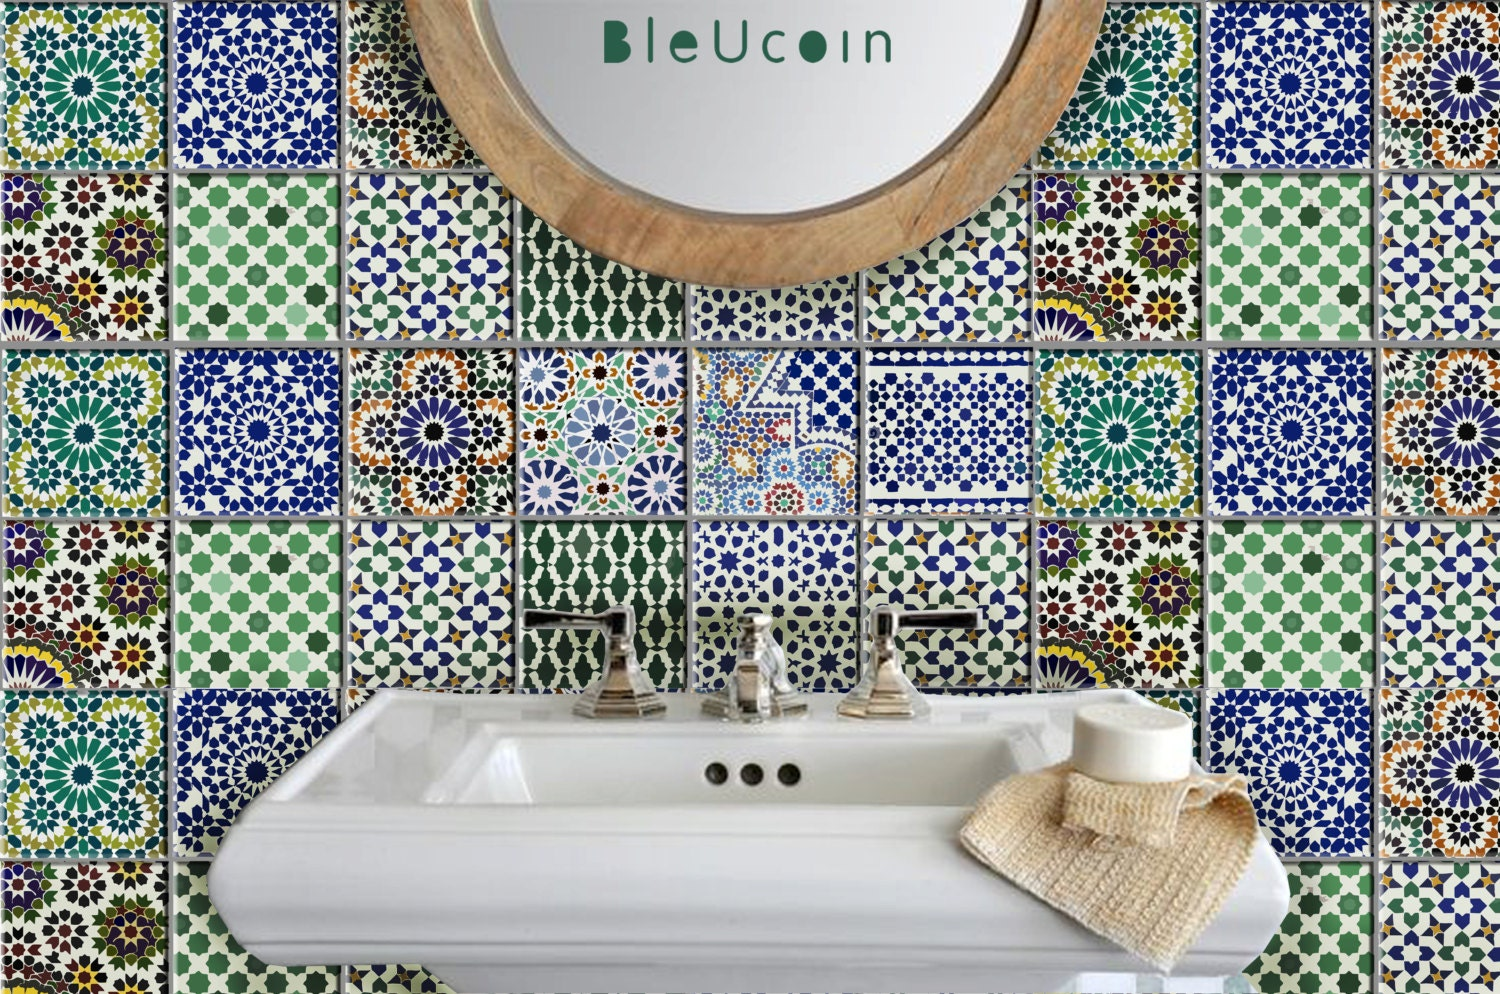 Moroccan TileWall Floor Decal Kitchen Bathroom Indoor